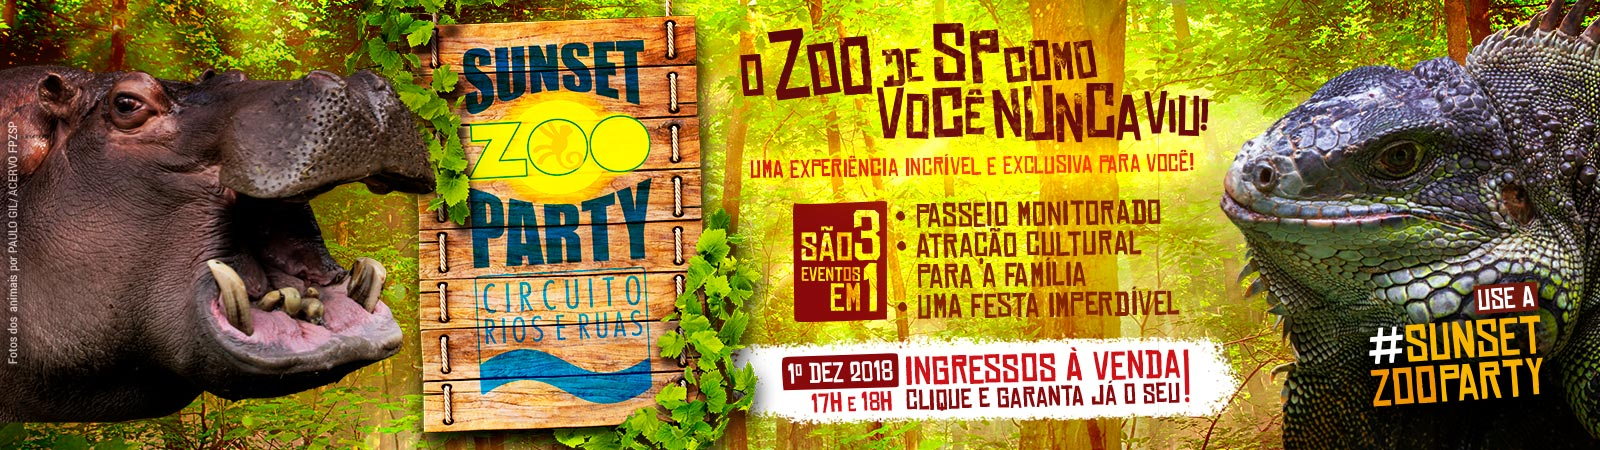 SUNSET ZOO PARTY - CIRCUITO RIOS E RUAS (AS NASCENTES DO RIO IPIRANGA)